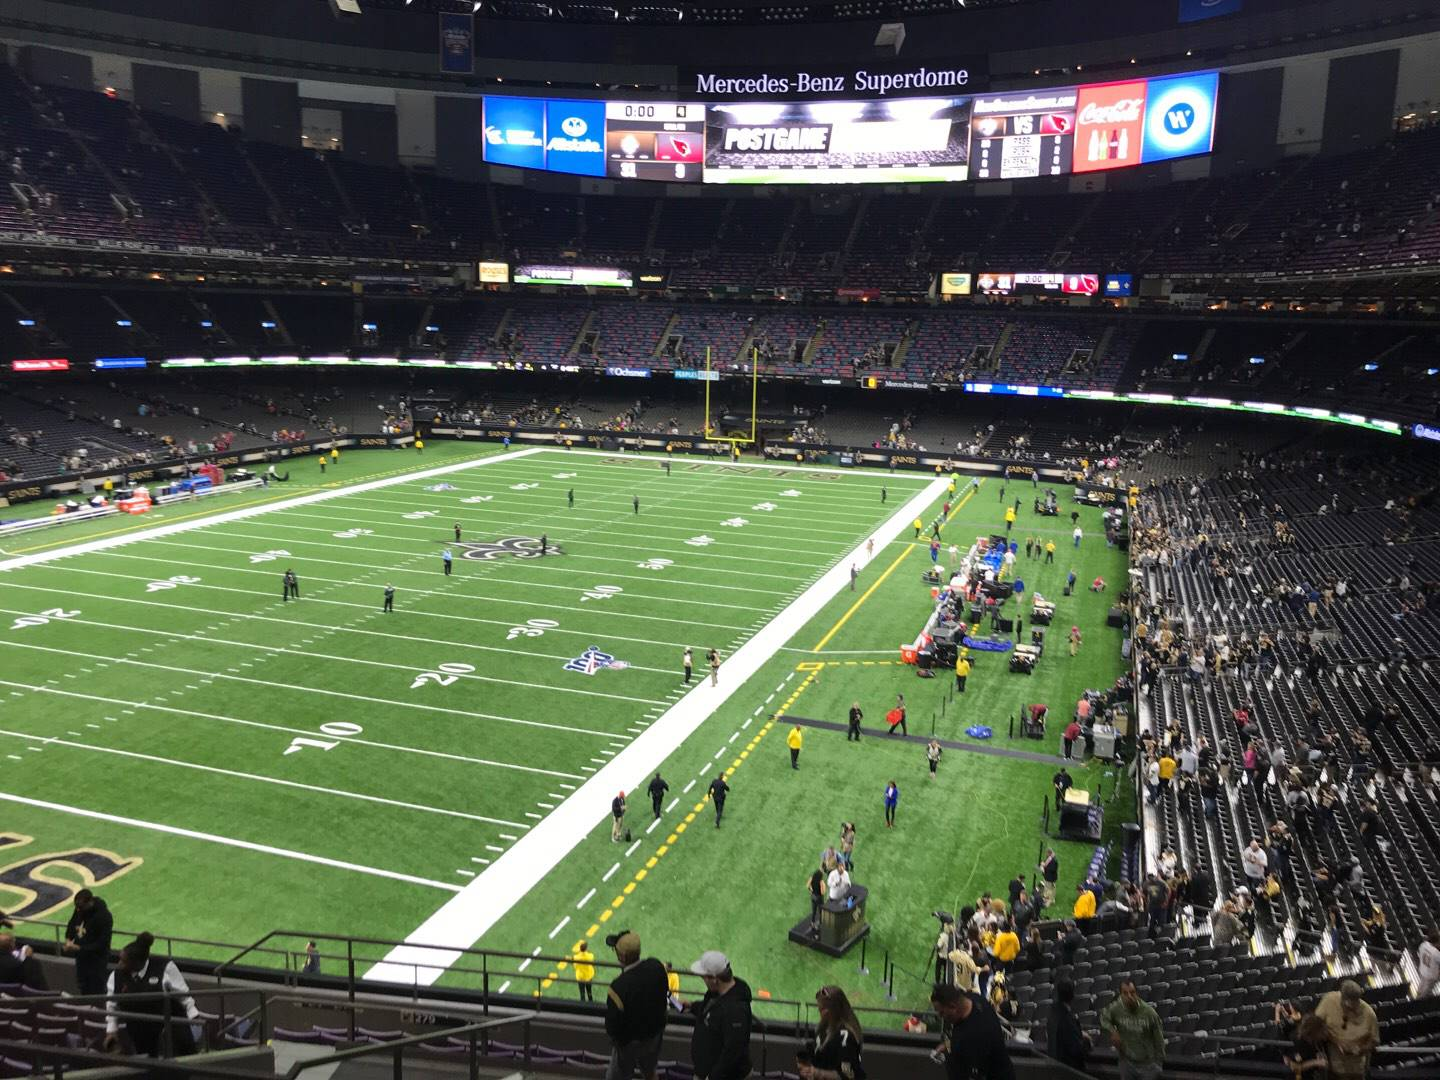 Mercedes-Benz Superdome Section 344 Row 15 Seat 19